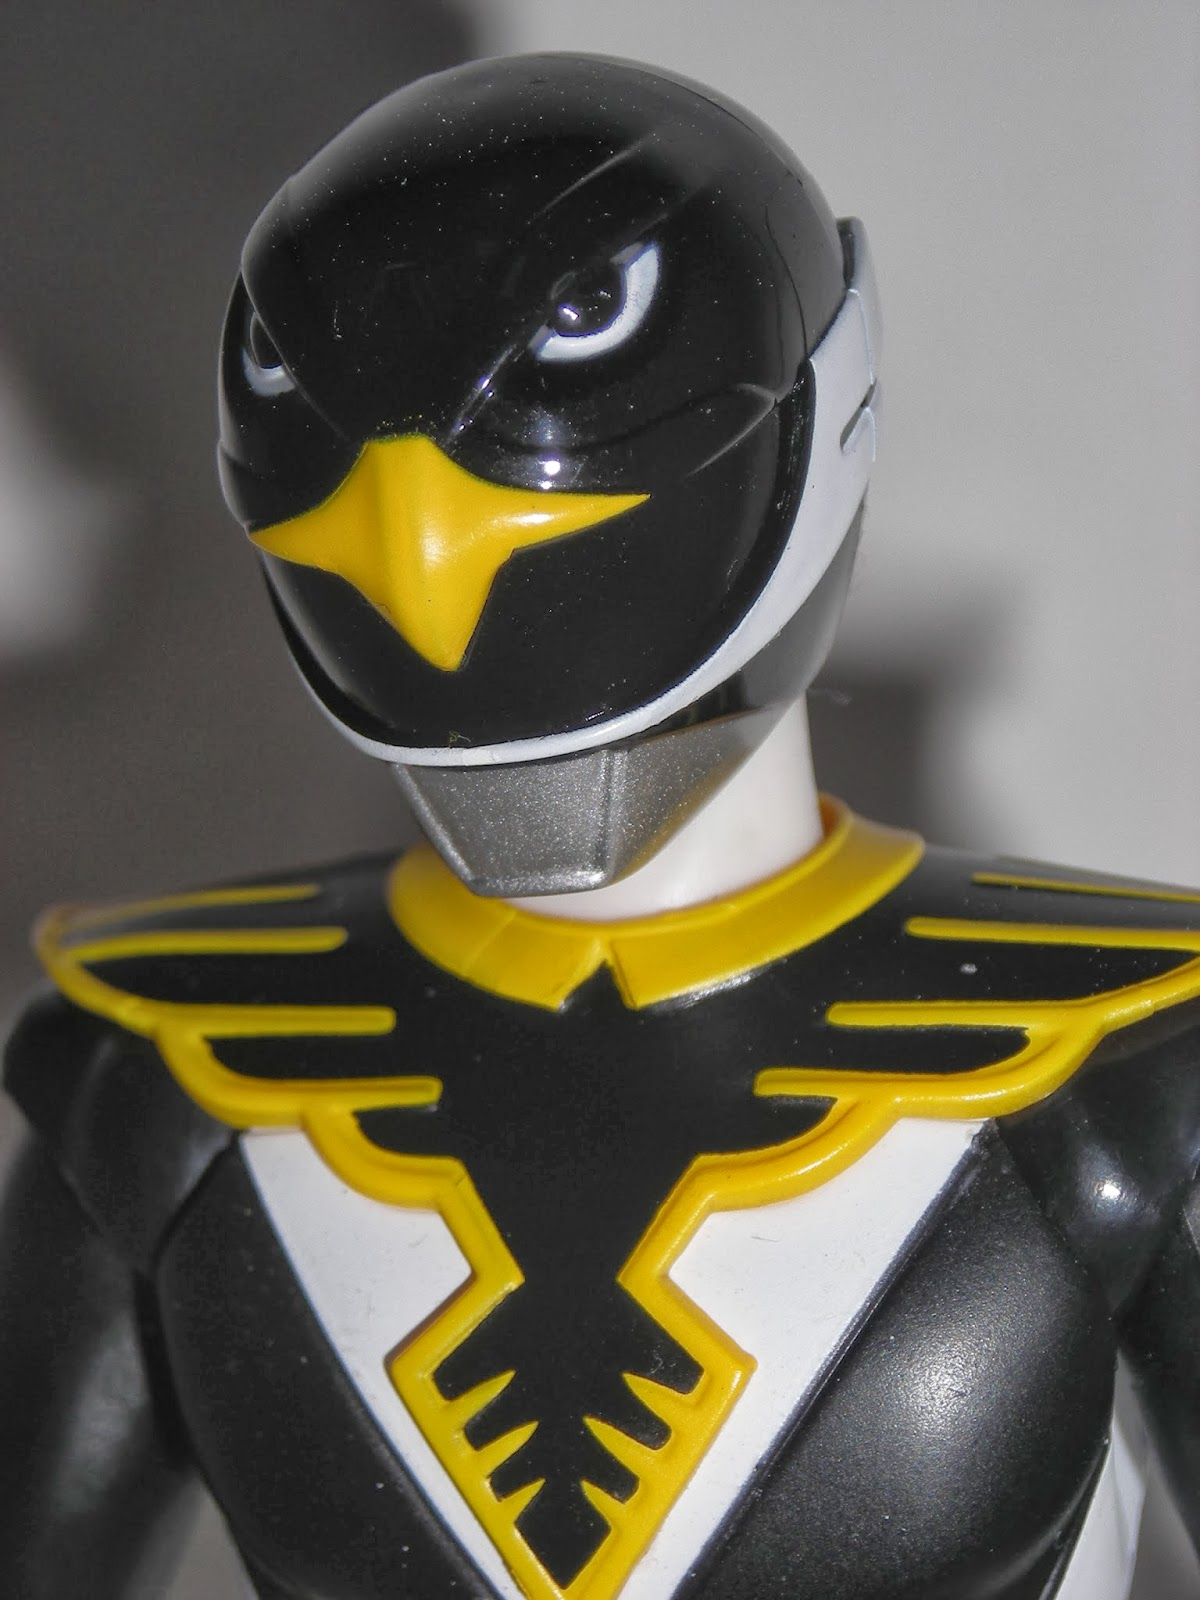 SH Figuarts Black Condor close up